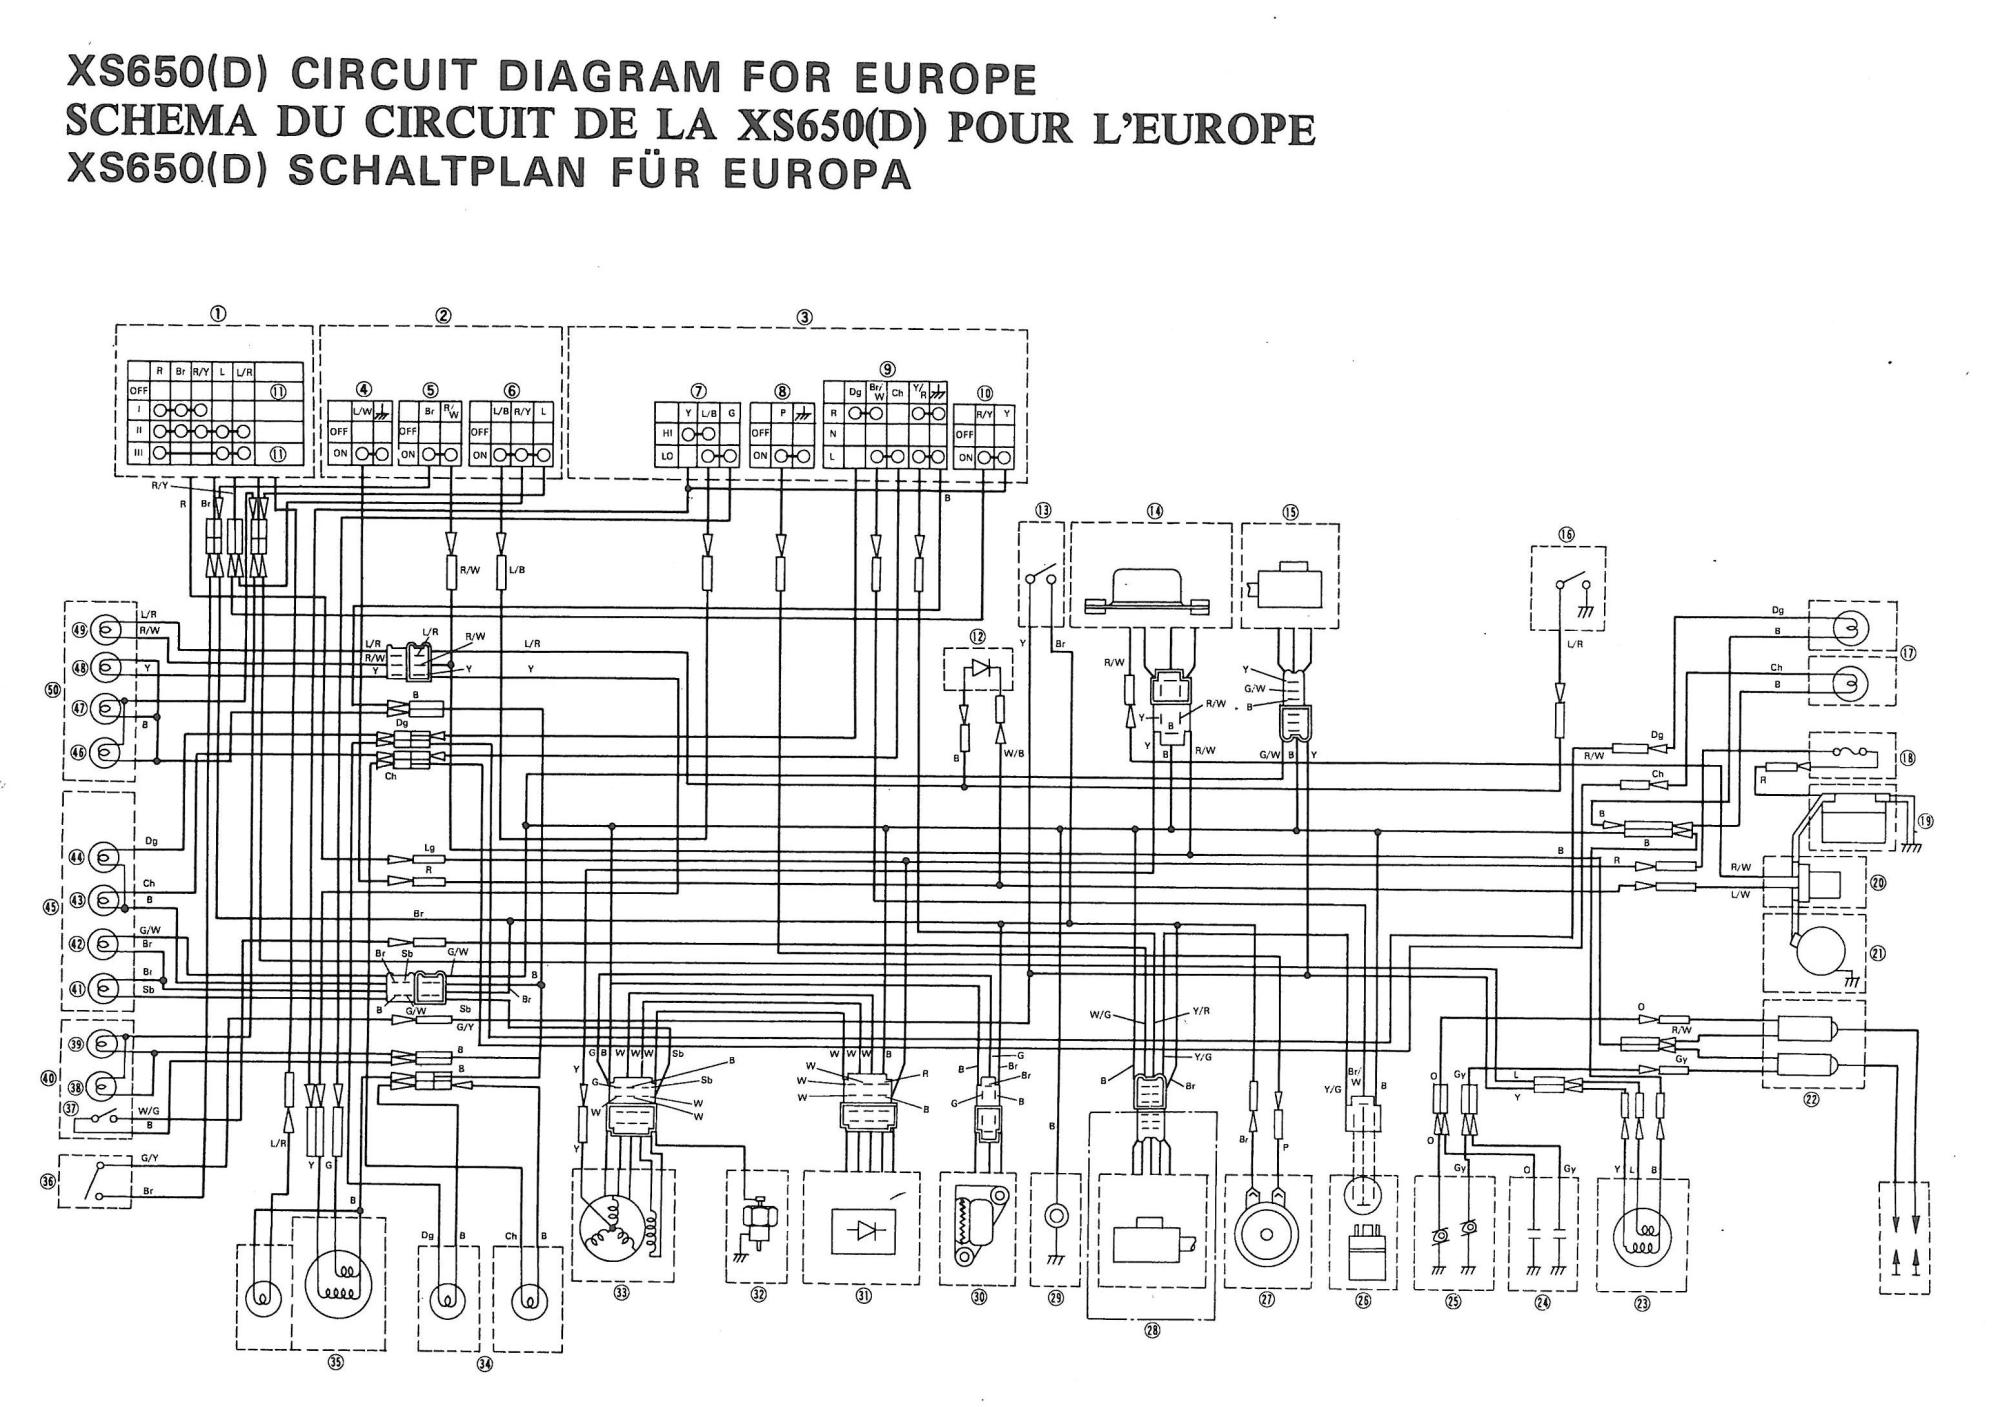 hight resolution of 1977 yamaha xs 650 wiring diagram best secret wiring diagram u2022 1979 yamaha xs650 1977 yamaha xs 650 wiring diagram